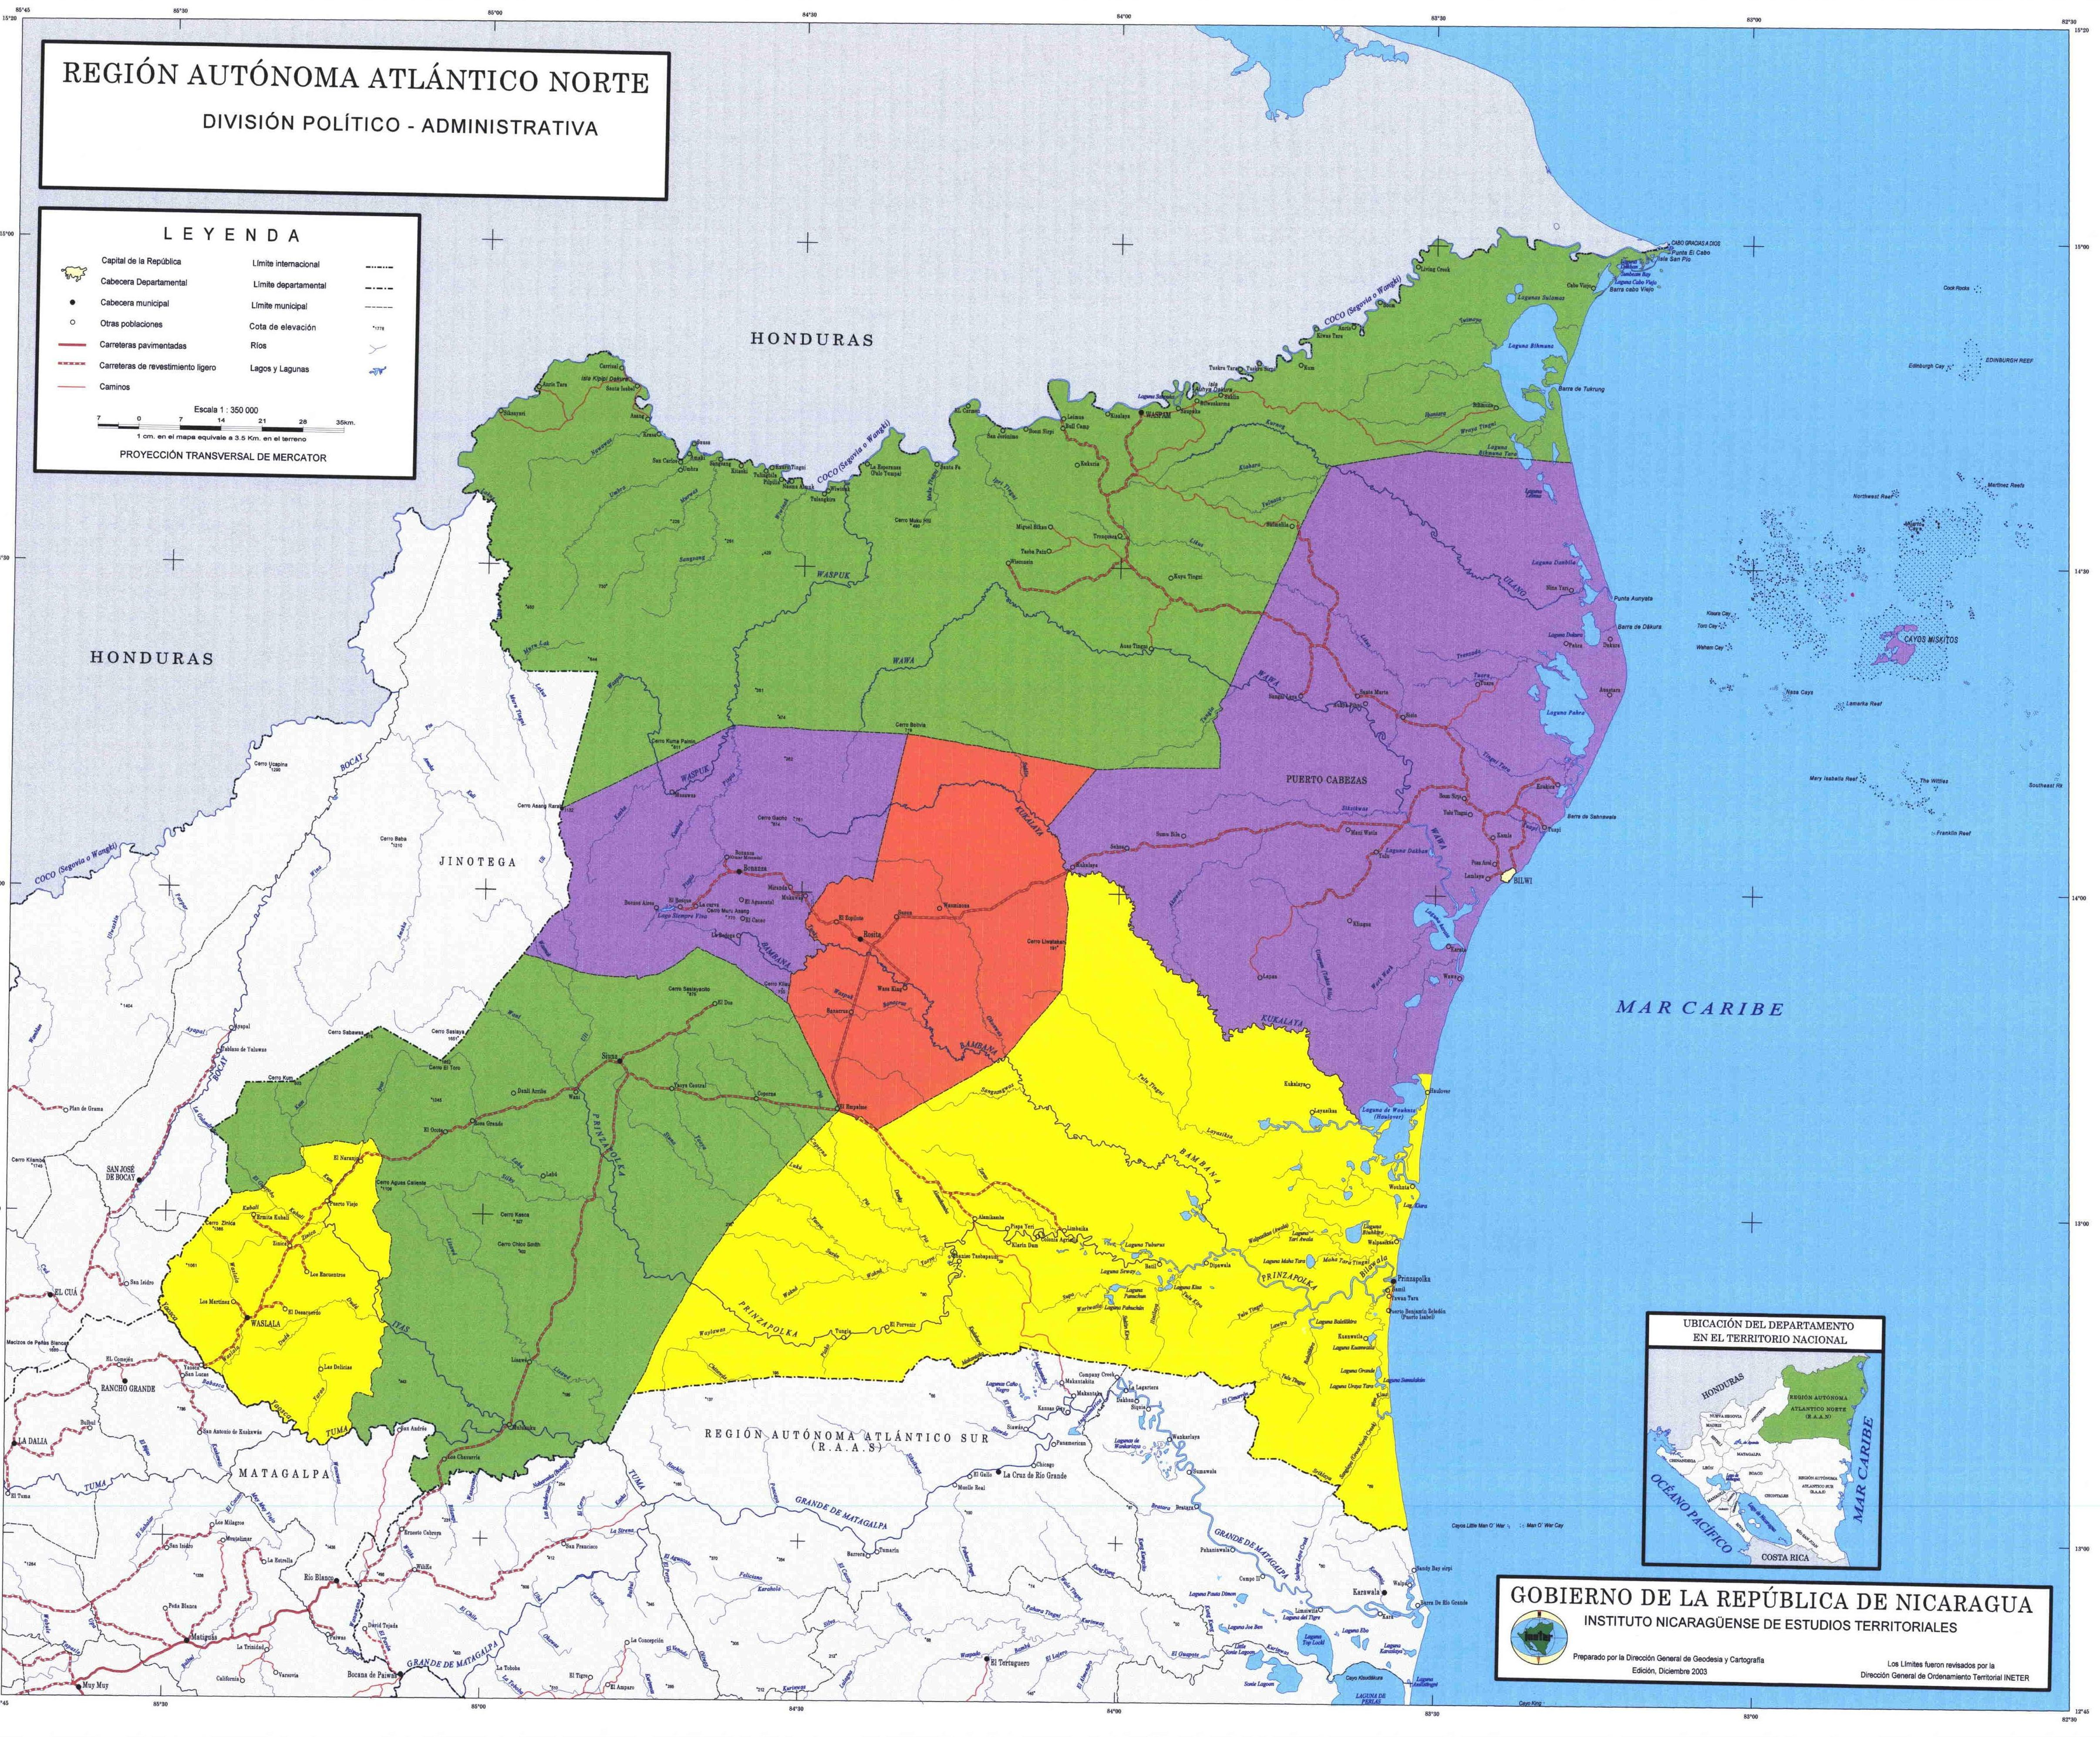 a thematic map of united states pictures html with 5224 Region Autonoma Del Atlantico Norte Administrative Political Map Nicaragua on Concord Map besides Thematic data also Lgbt Rights additionally Physical Map Of Kentucky besides 9757 providence Topographic City Map Rhode Island United States.